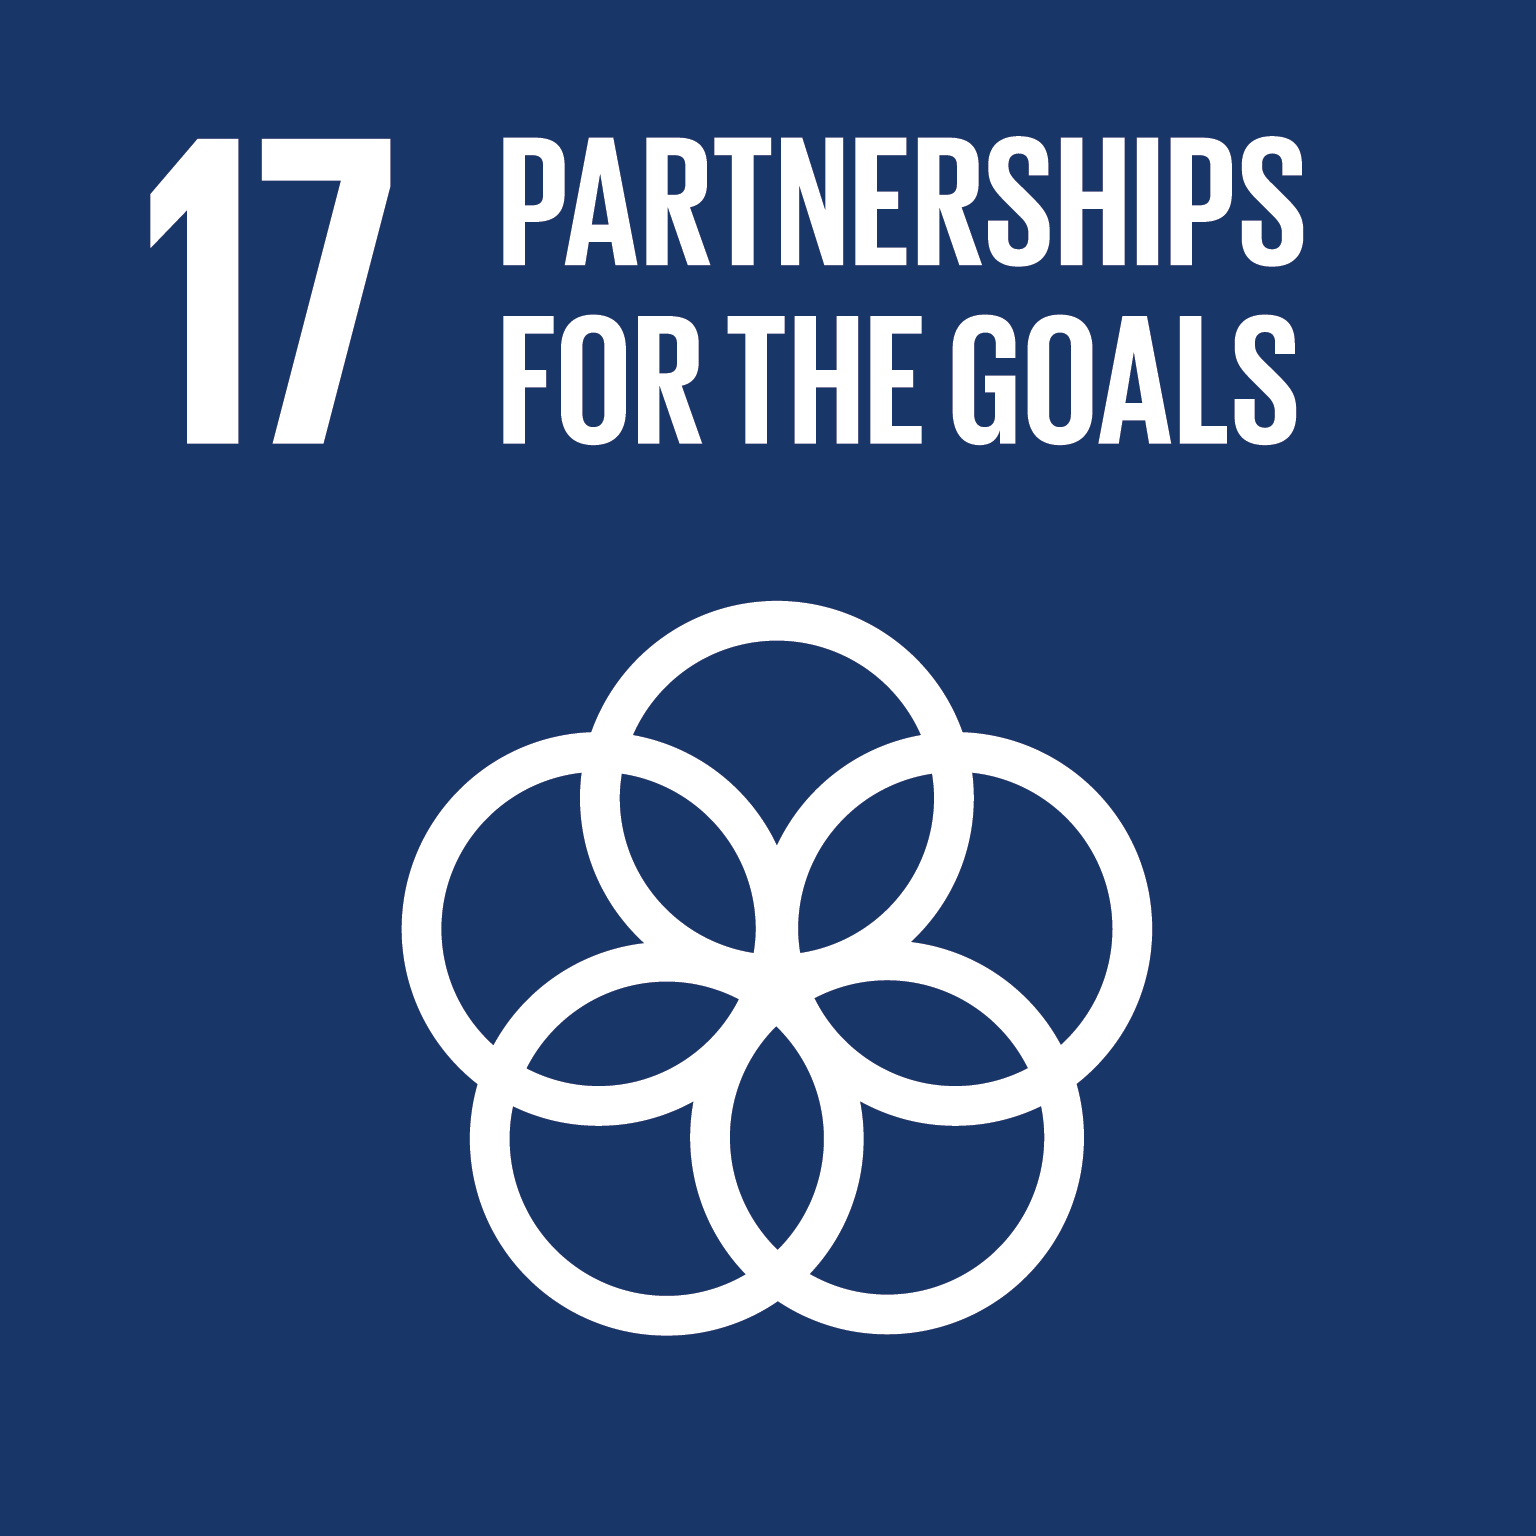 Goal 17 – Partnerships for the Goals